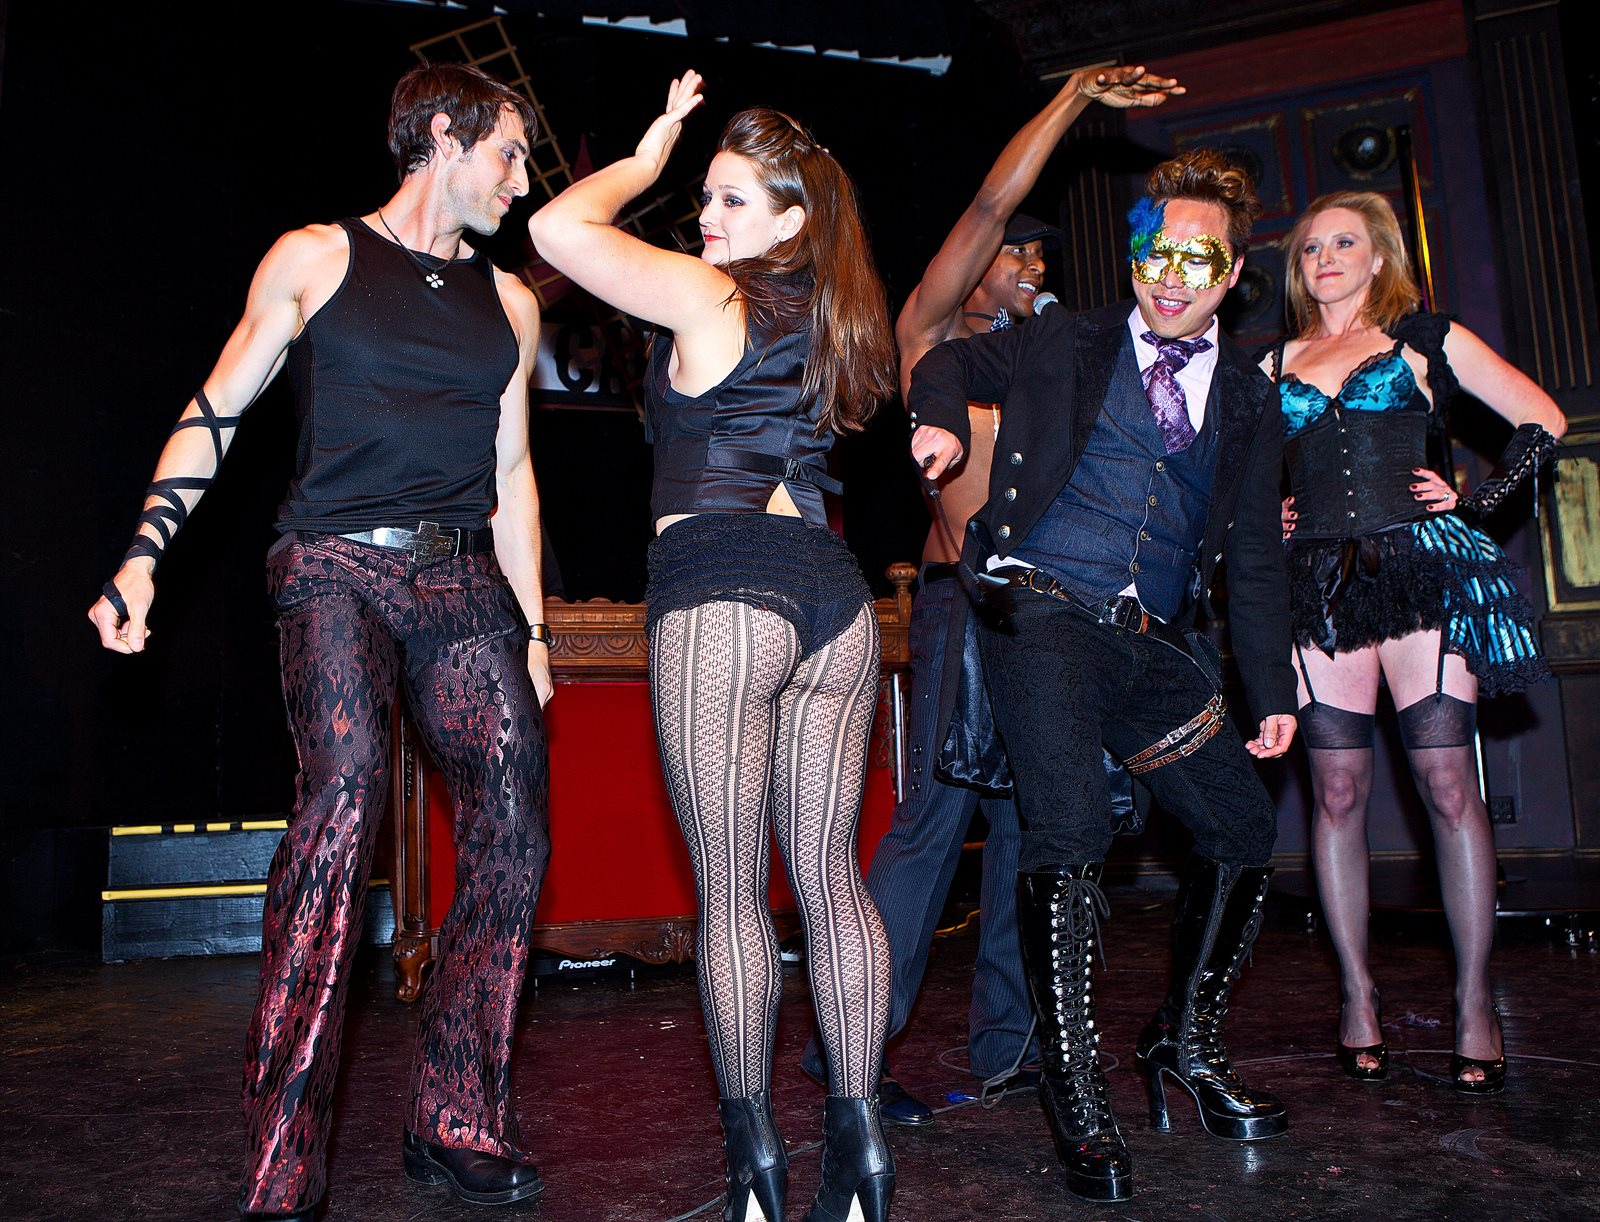 Contestants of the French Kiss costume contest showing what they've got!